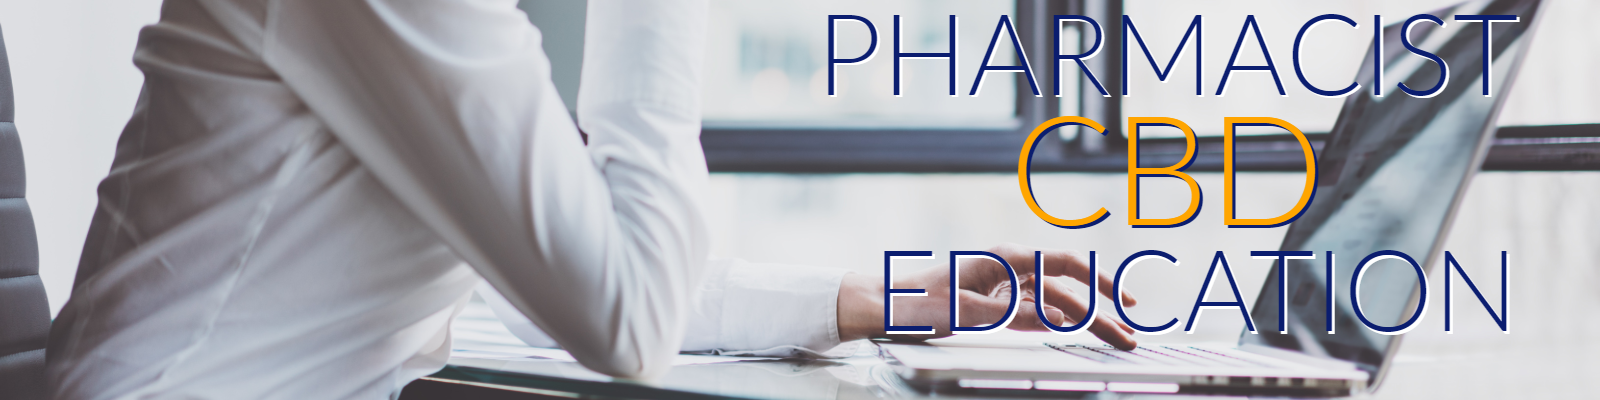 pharmacist education page header